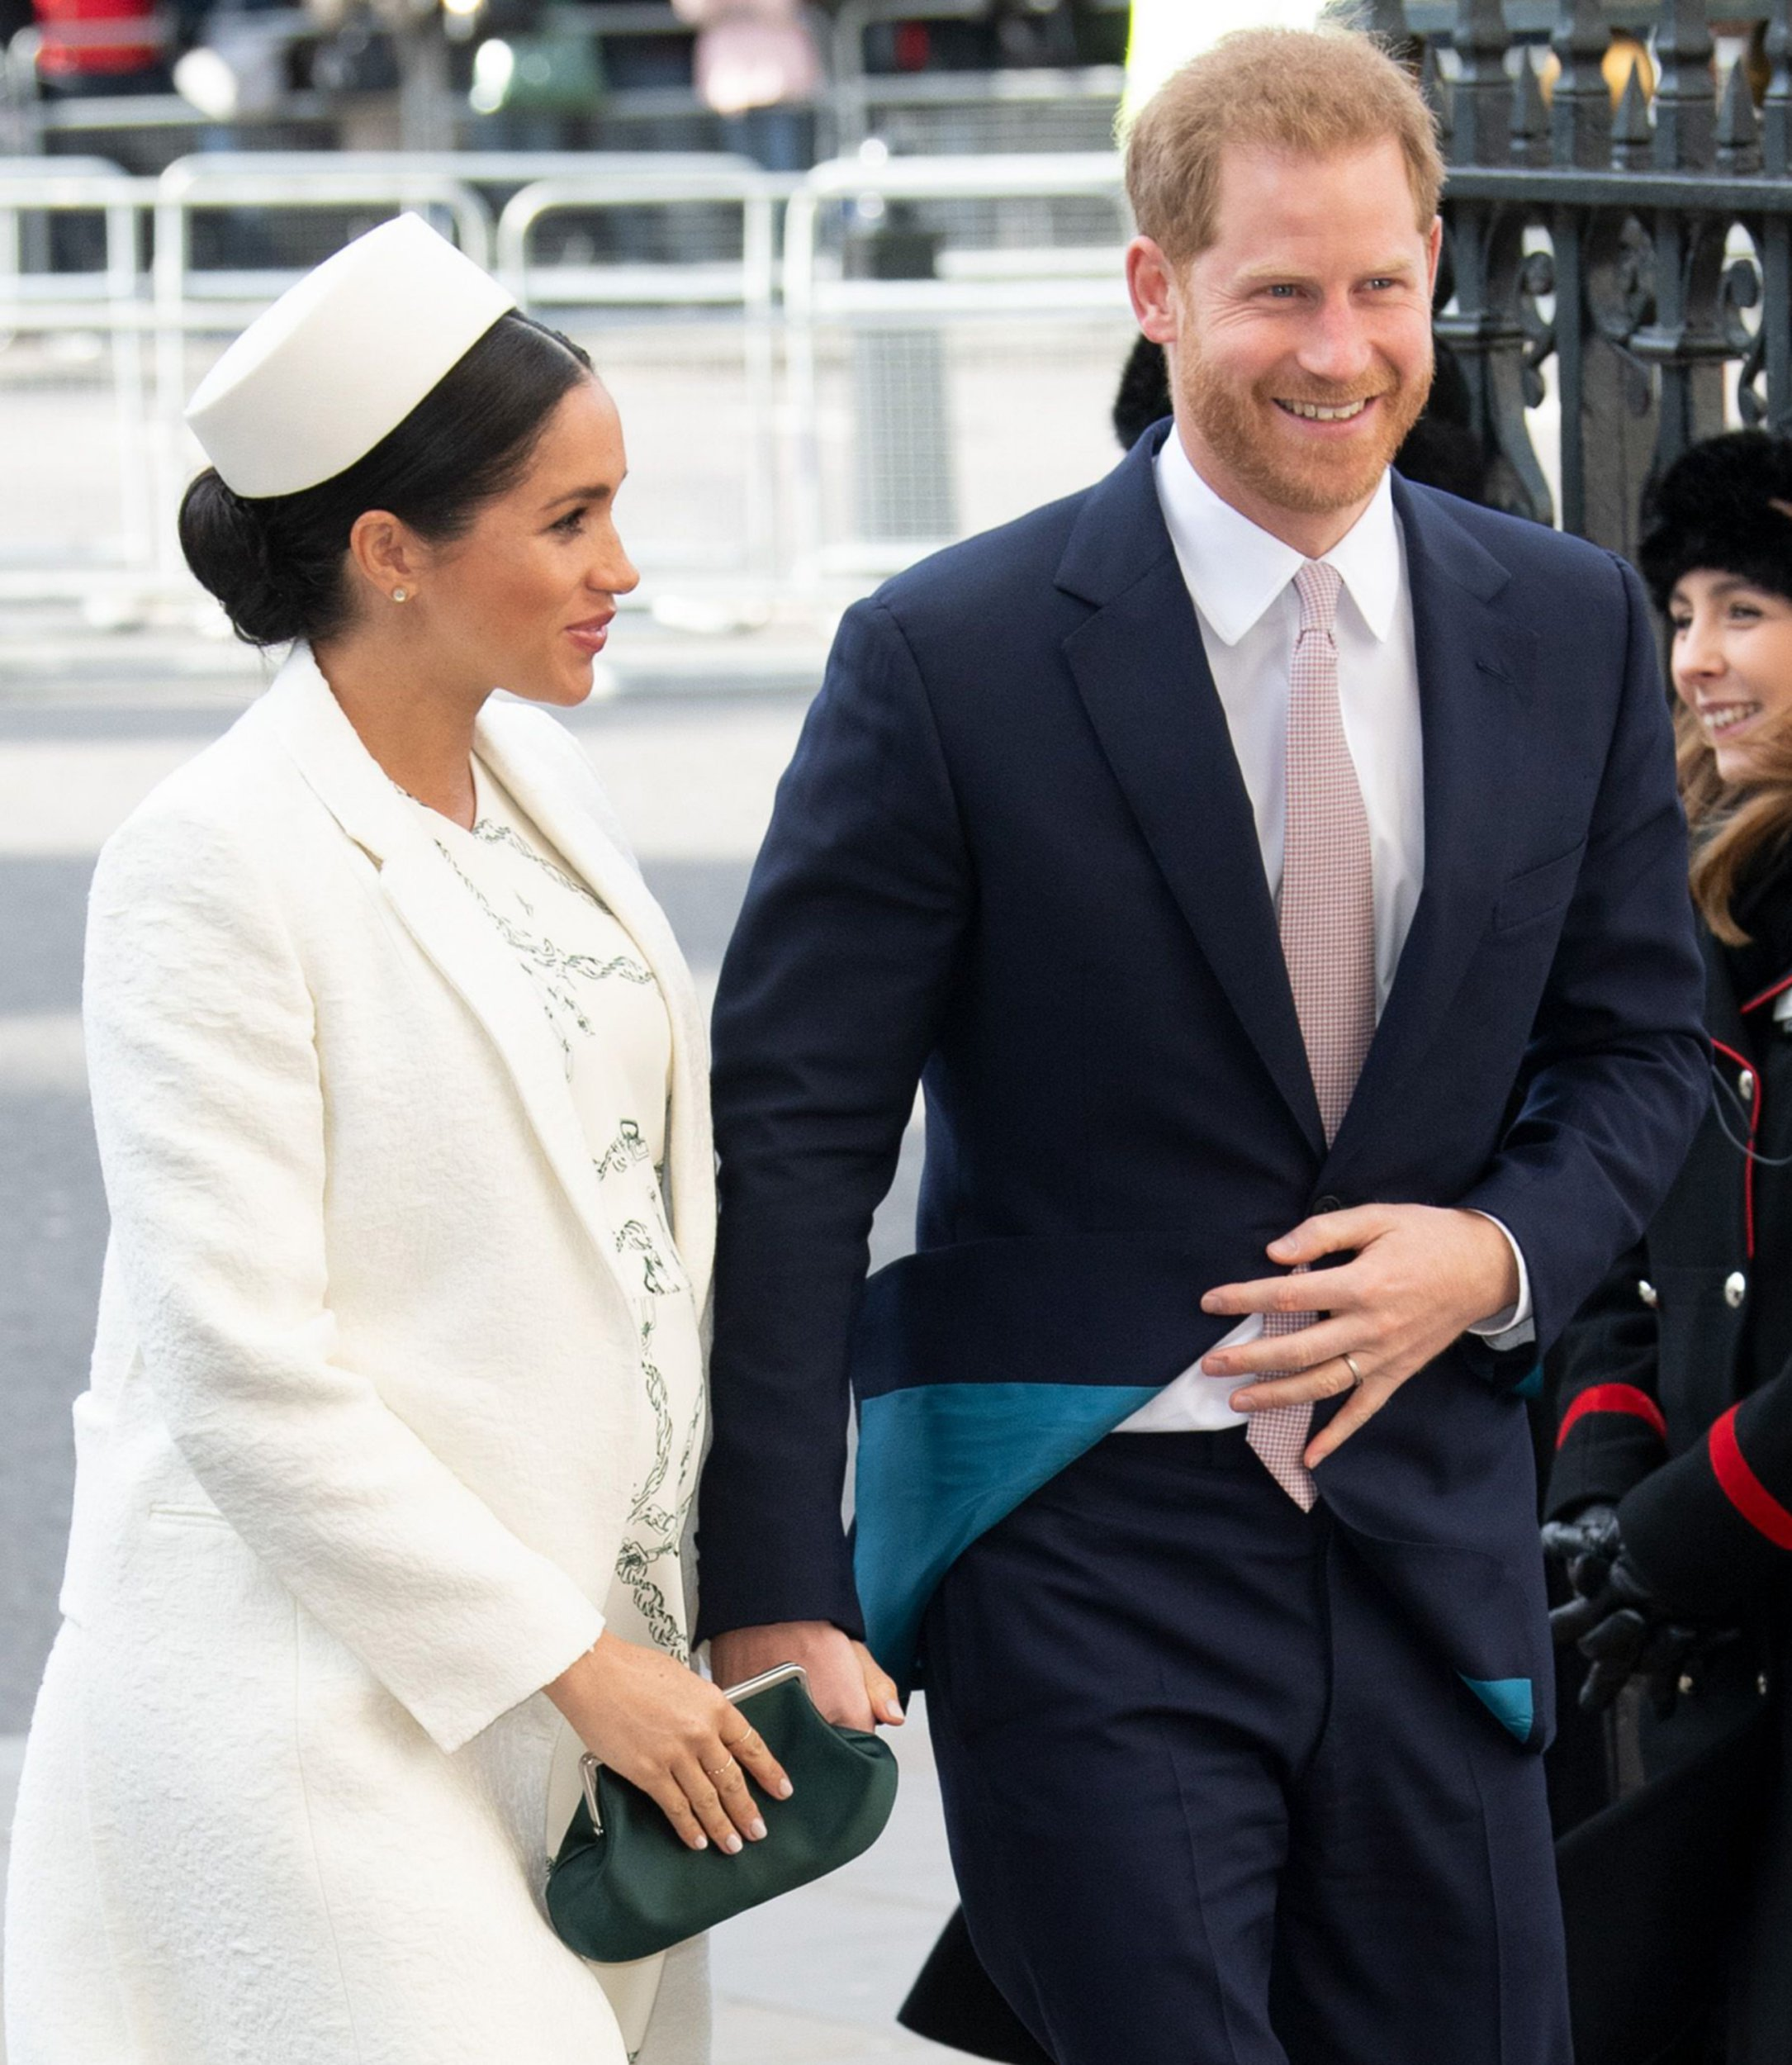 Prince Harry, Duke of Sussex and Meghan, Duchess of Sussex attend the Commonwealth Day service at Westminster Abbey Pictured: Prince Harry,Meghan Markle Ref: SPL5072825 130319 NON-EXCLUSIVE Picture by: ENT / SplashNews.com Splash News and Pictures Los Angeles: 310-821-2666 New York: 212-619-2666 London: 0207 644 7656 Milan: 02 4399 8577 photodesk@splashnews.com World Rights,